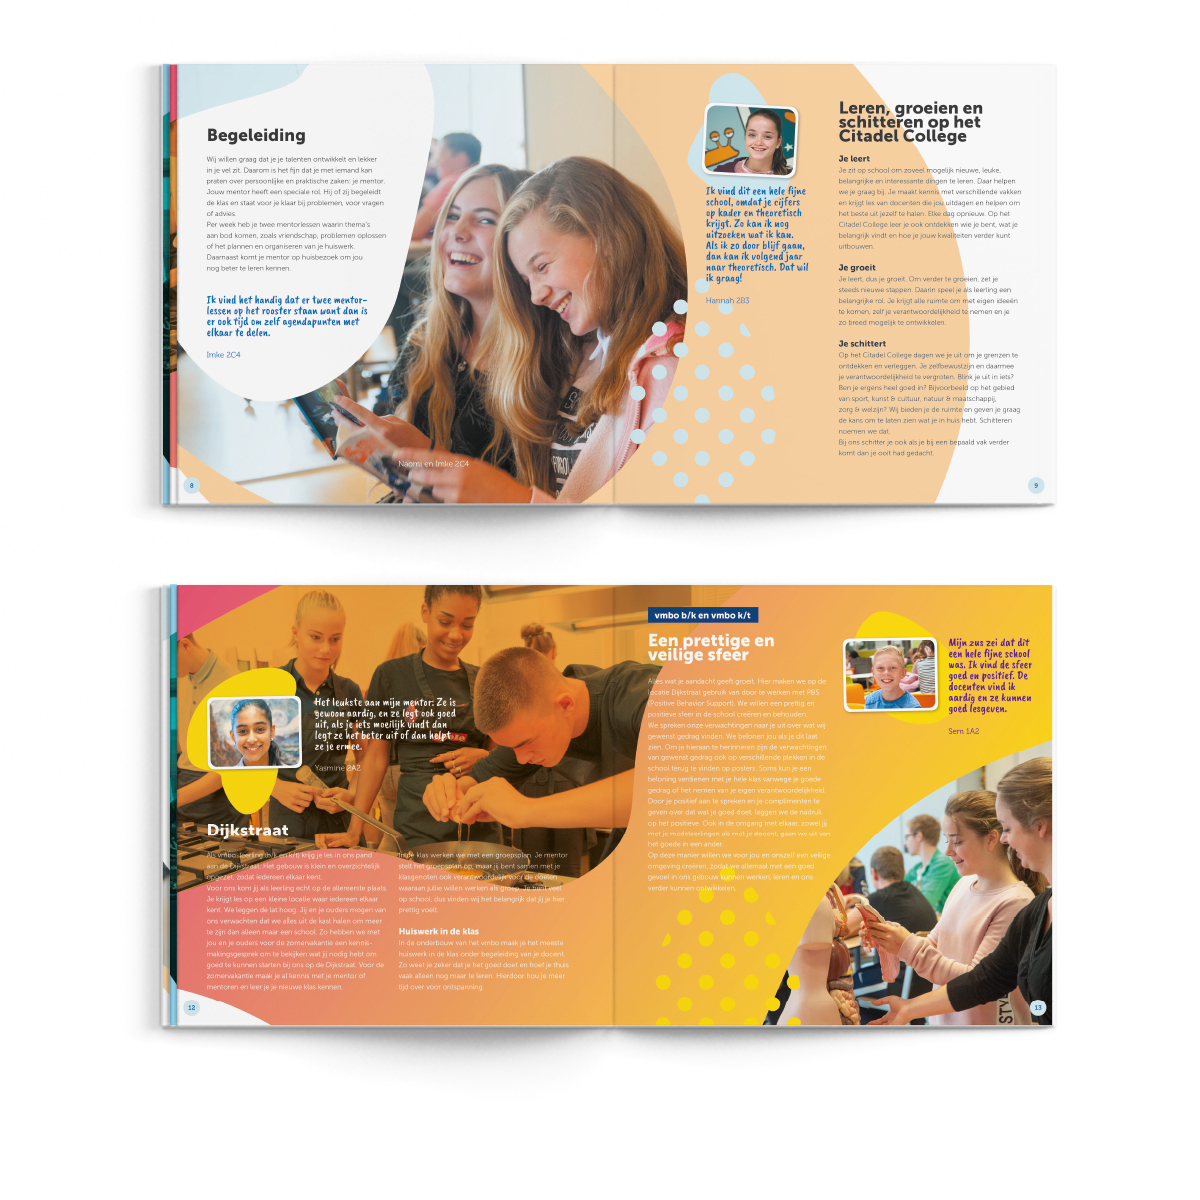 Citadel College | Brochure | Creative Digital Agency Puntkomma Nijmegen